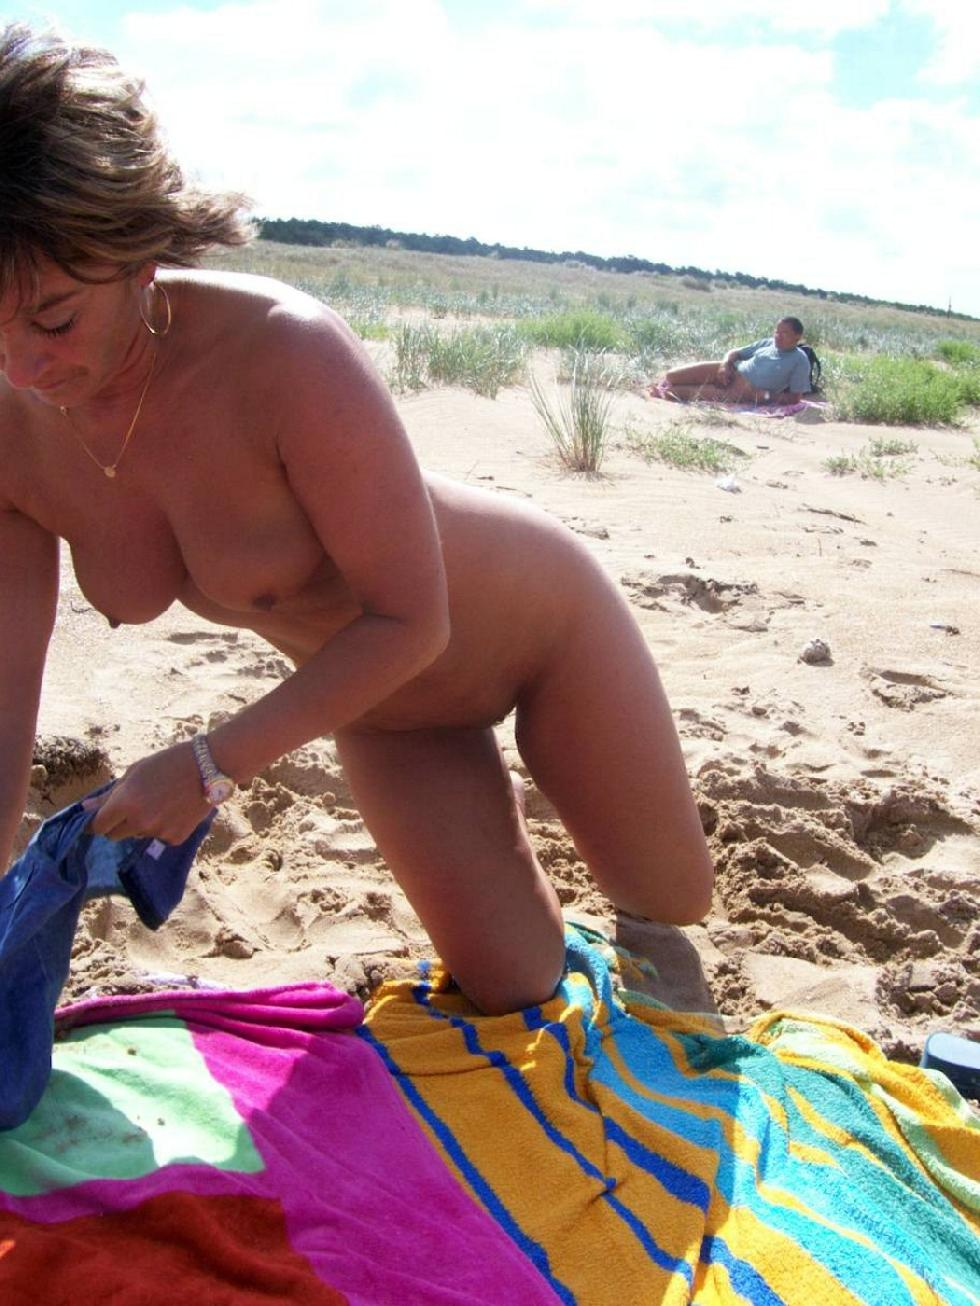 Amateur is relaxing on the beach - 3